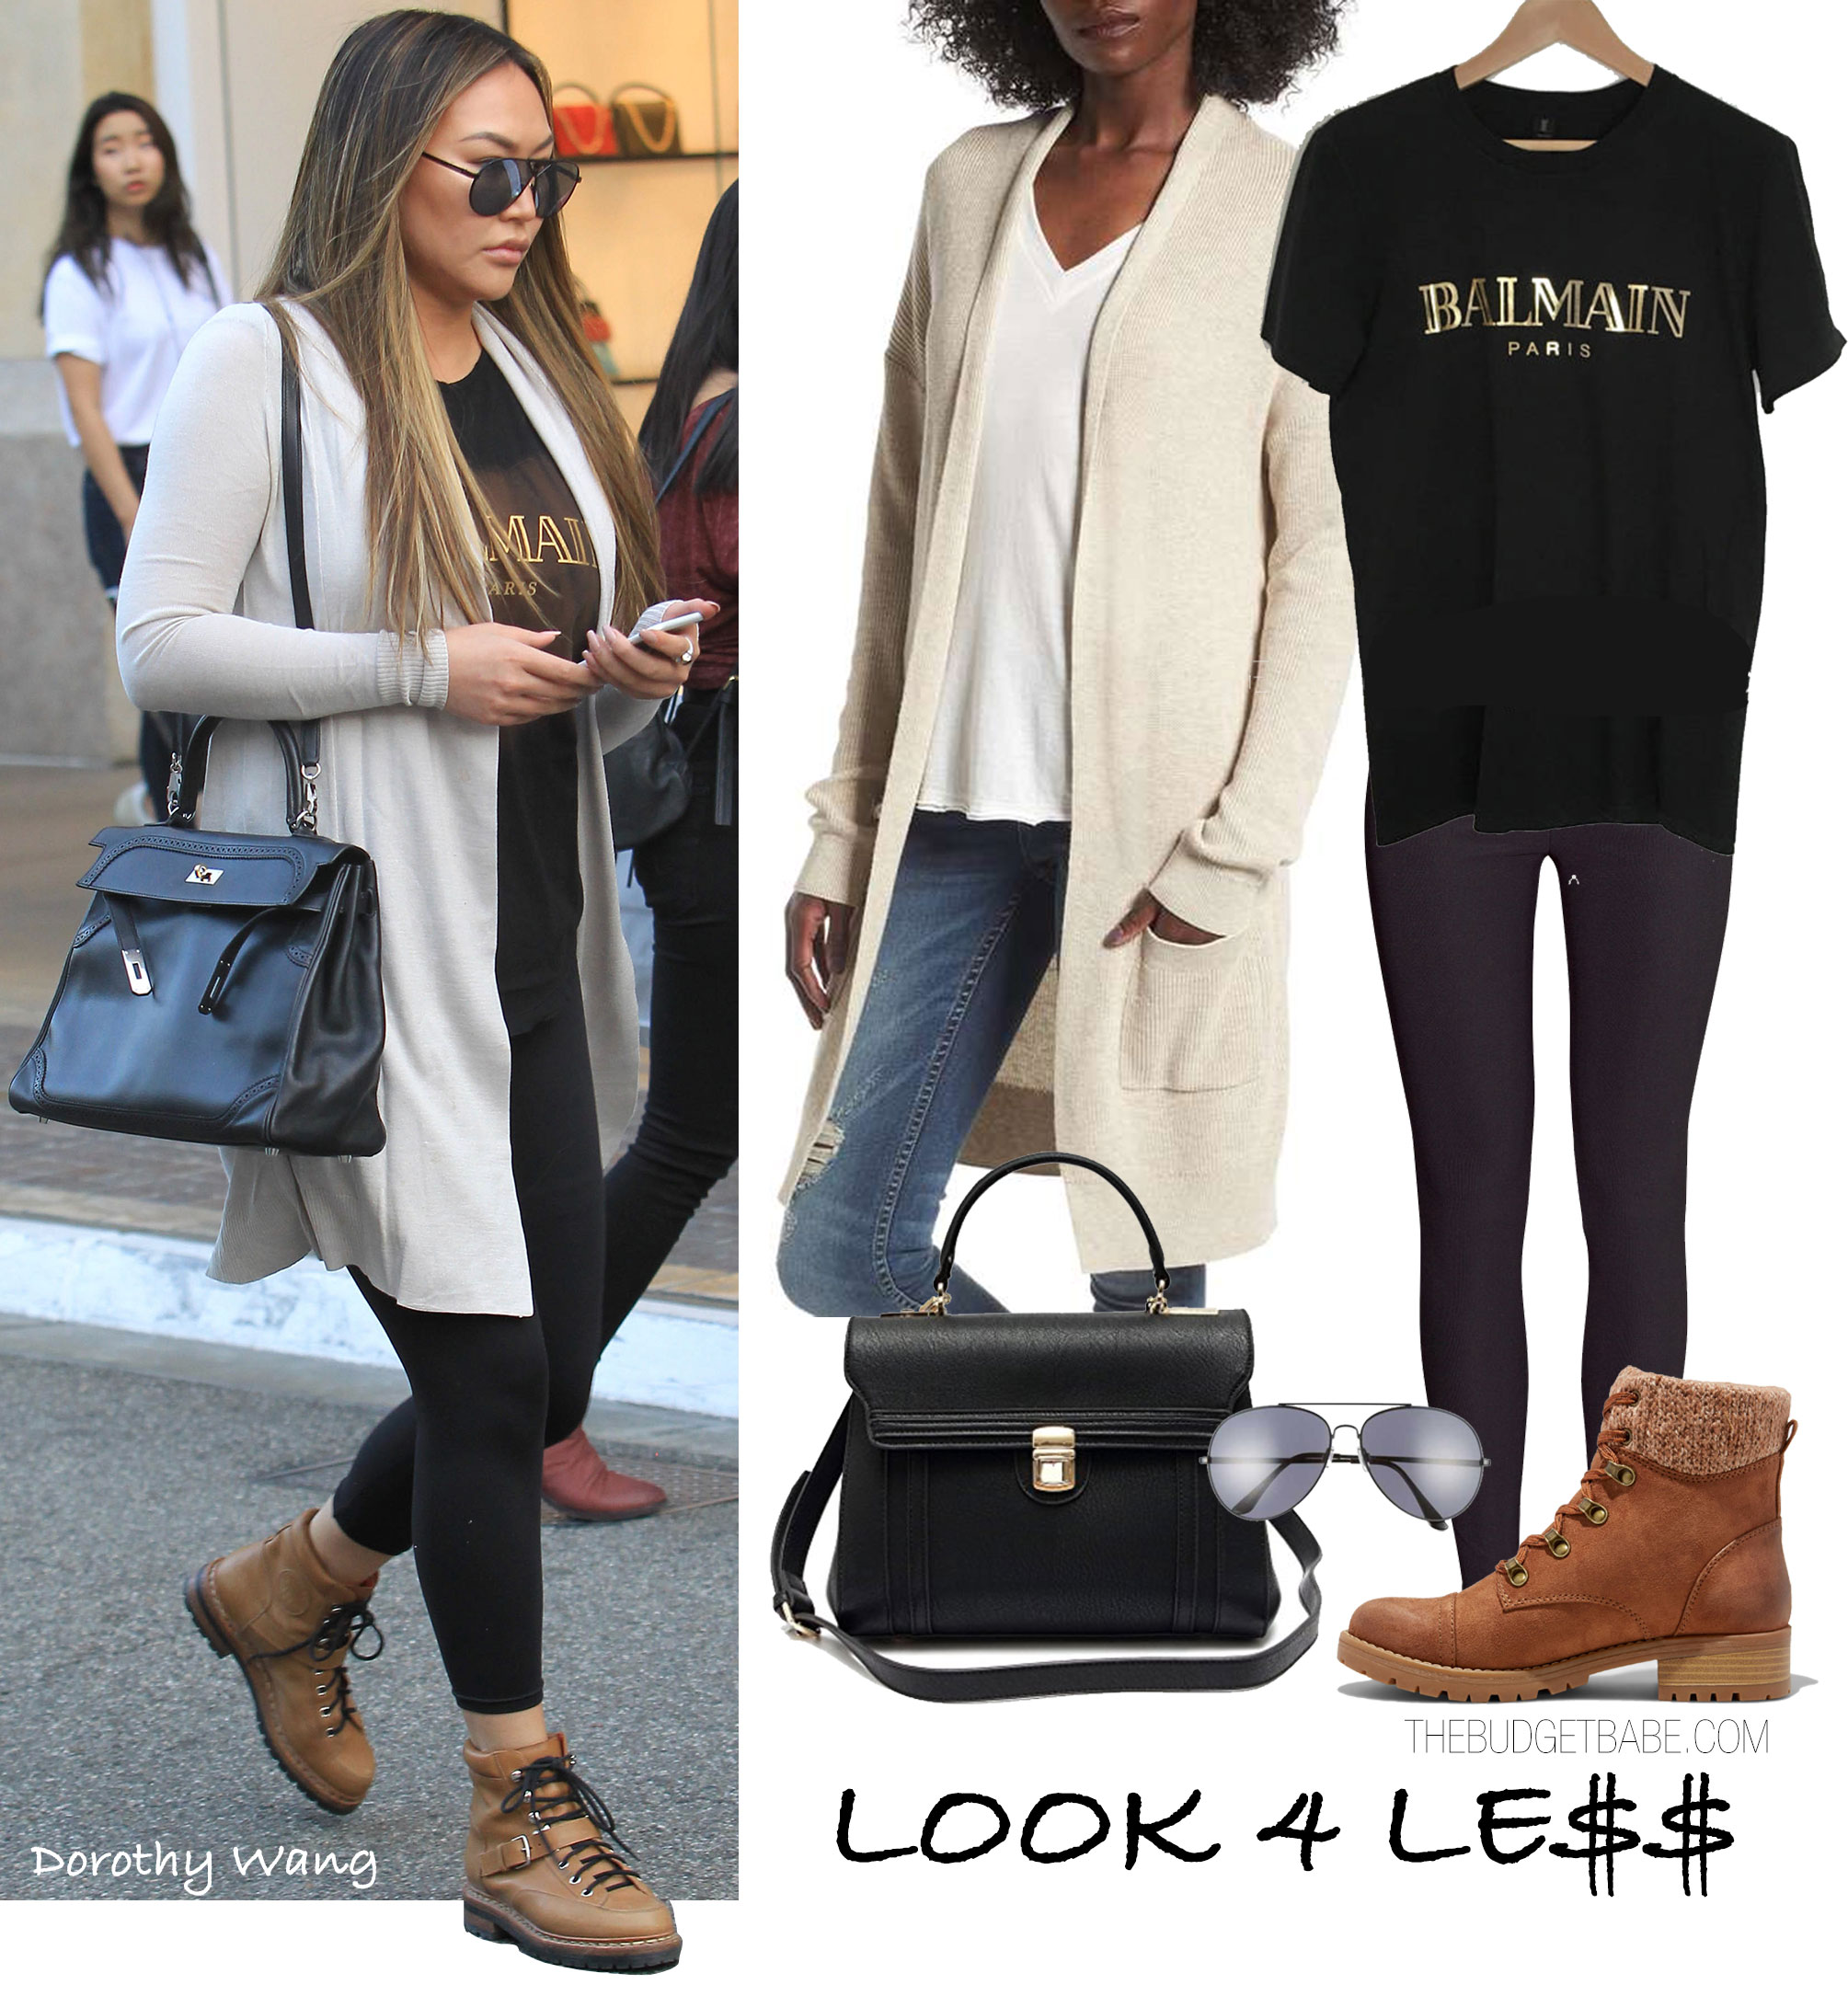 Dorothy Wang wears a gold foil Balmain tee with leggings, hiking boots and a beige cardigan.